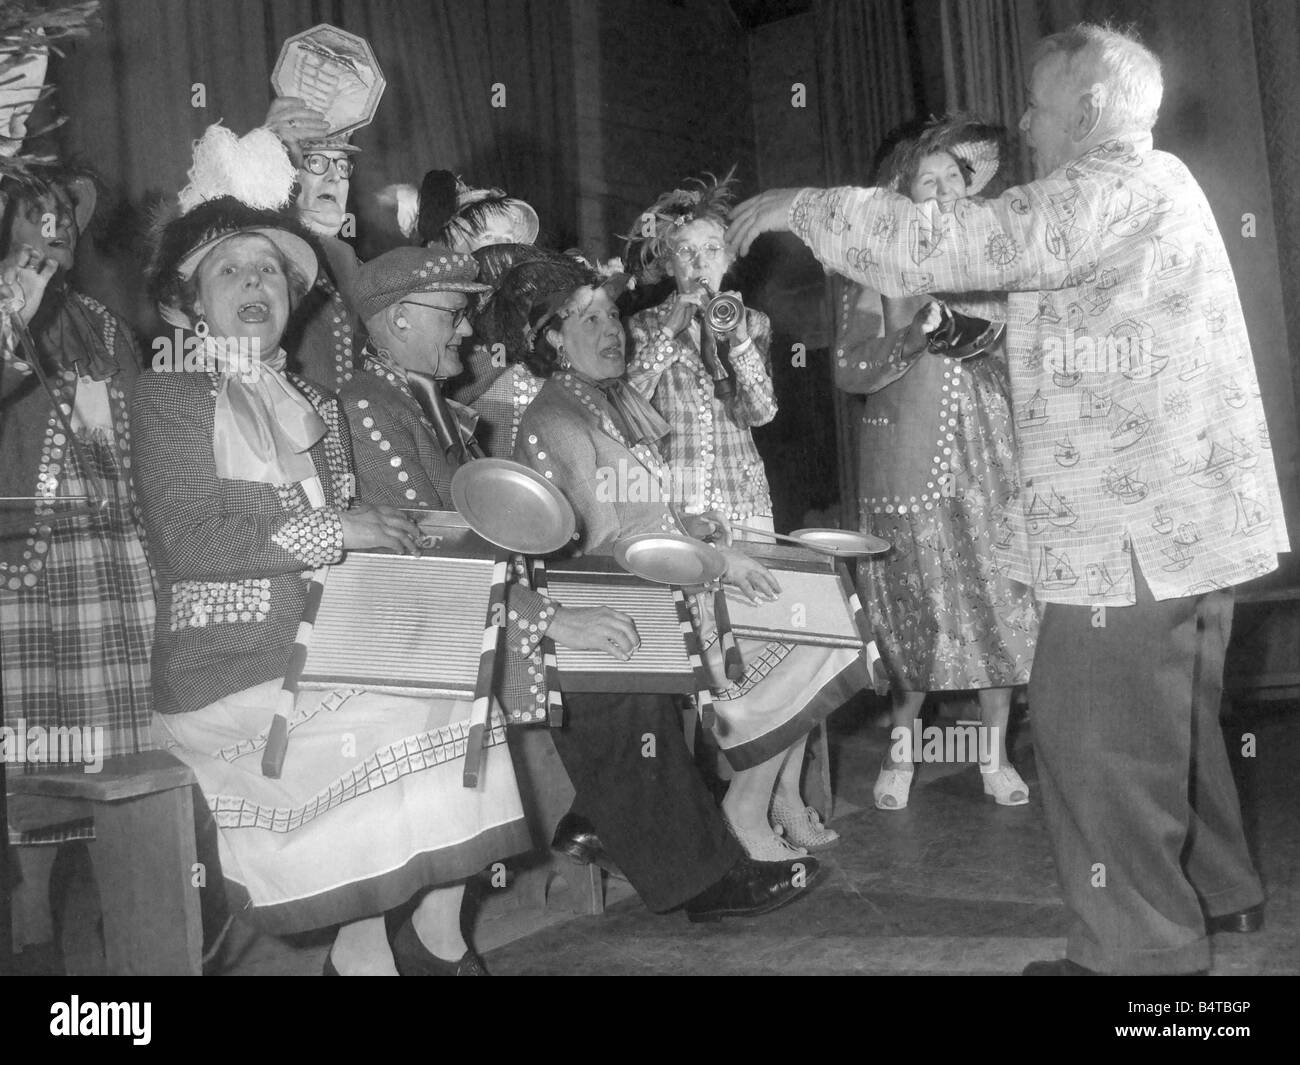 Pearly kings and queens play the washboard and other musical instruments during a concert - Stock Image